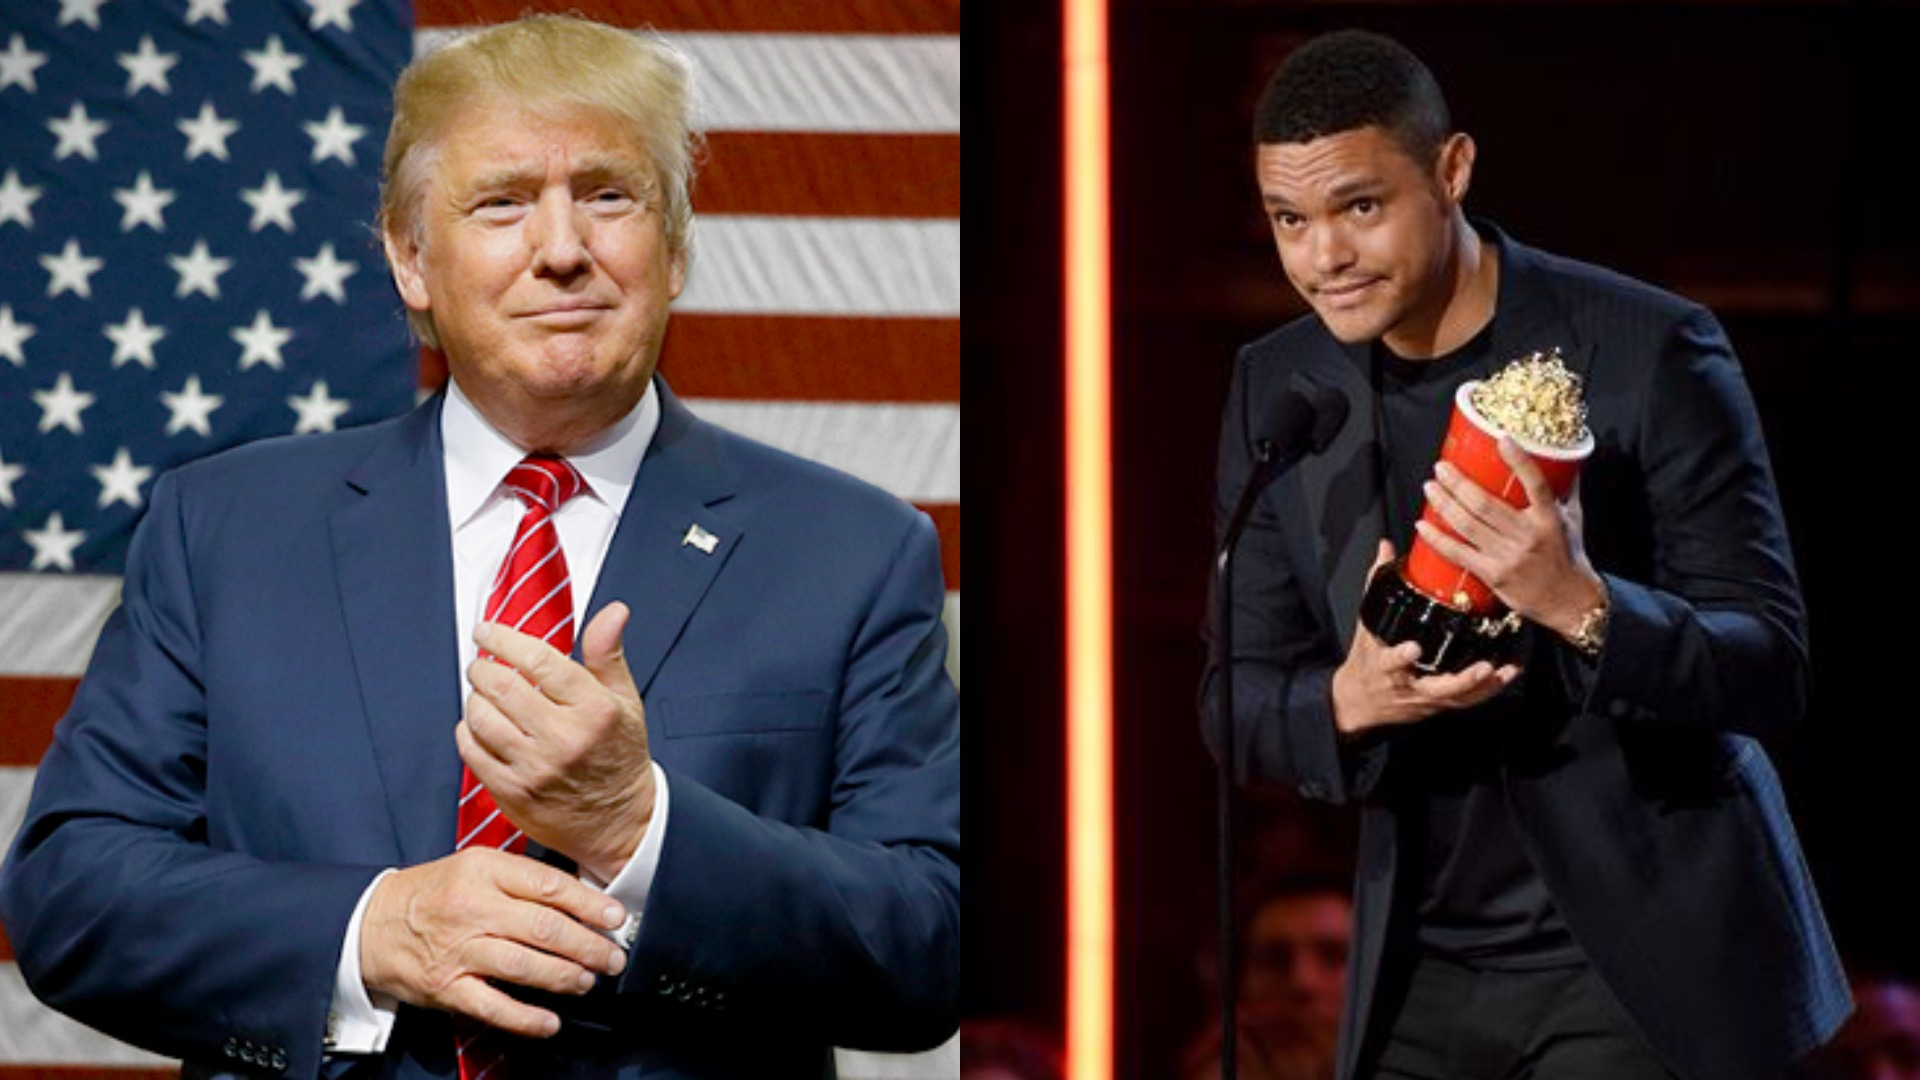 Trevor noah donald trump clipart thank you tour download Trevor Noah thanks Donald Trump after winning an award ... download